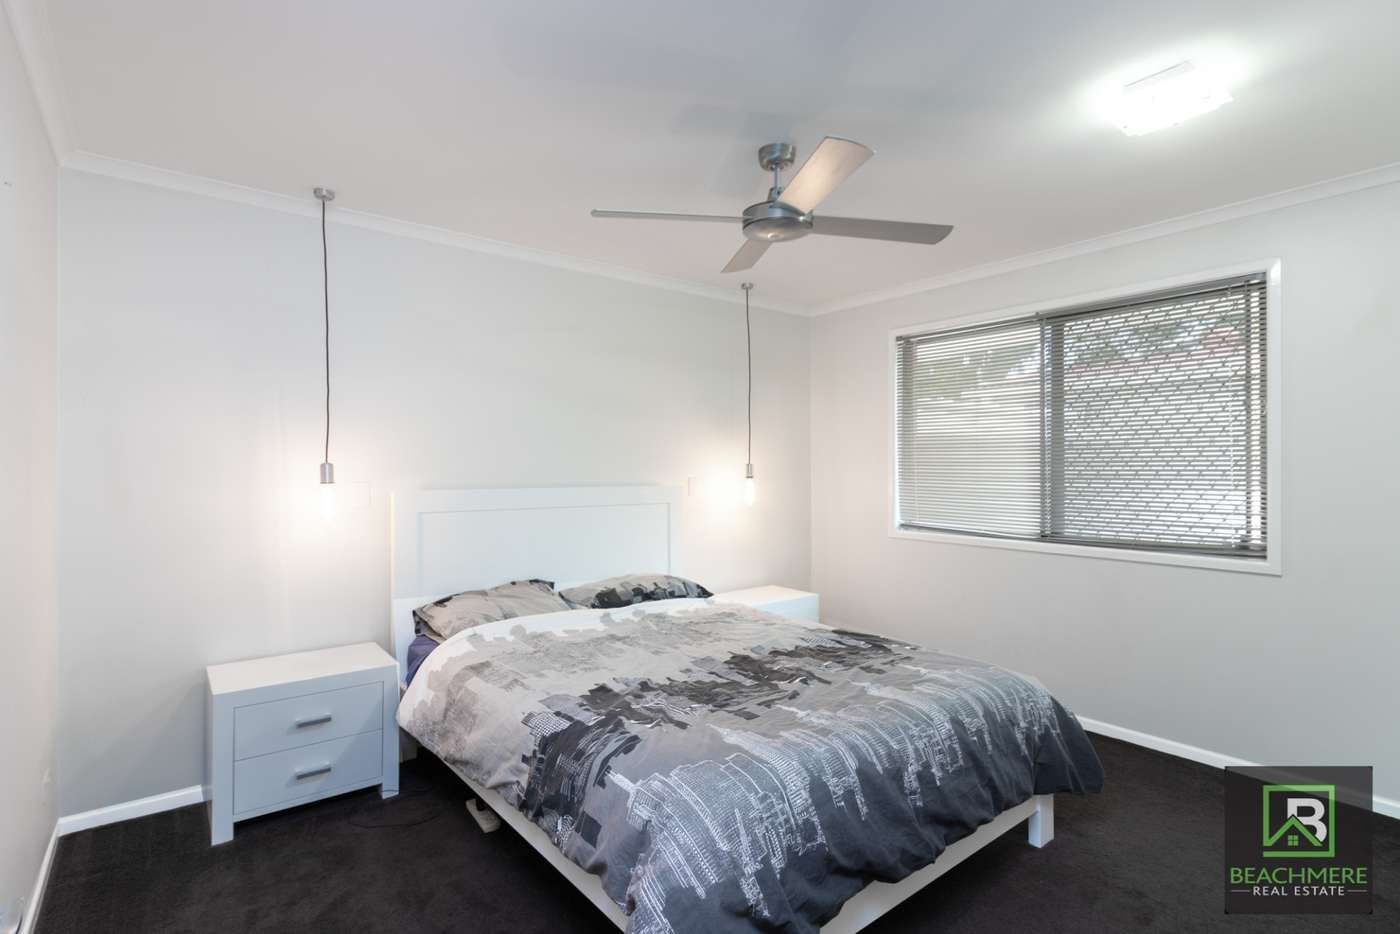 Sixth view of Homely house listing, 41 Patrick Street, Beachmere QLD 4510